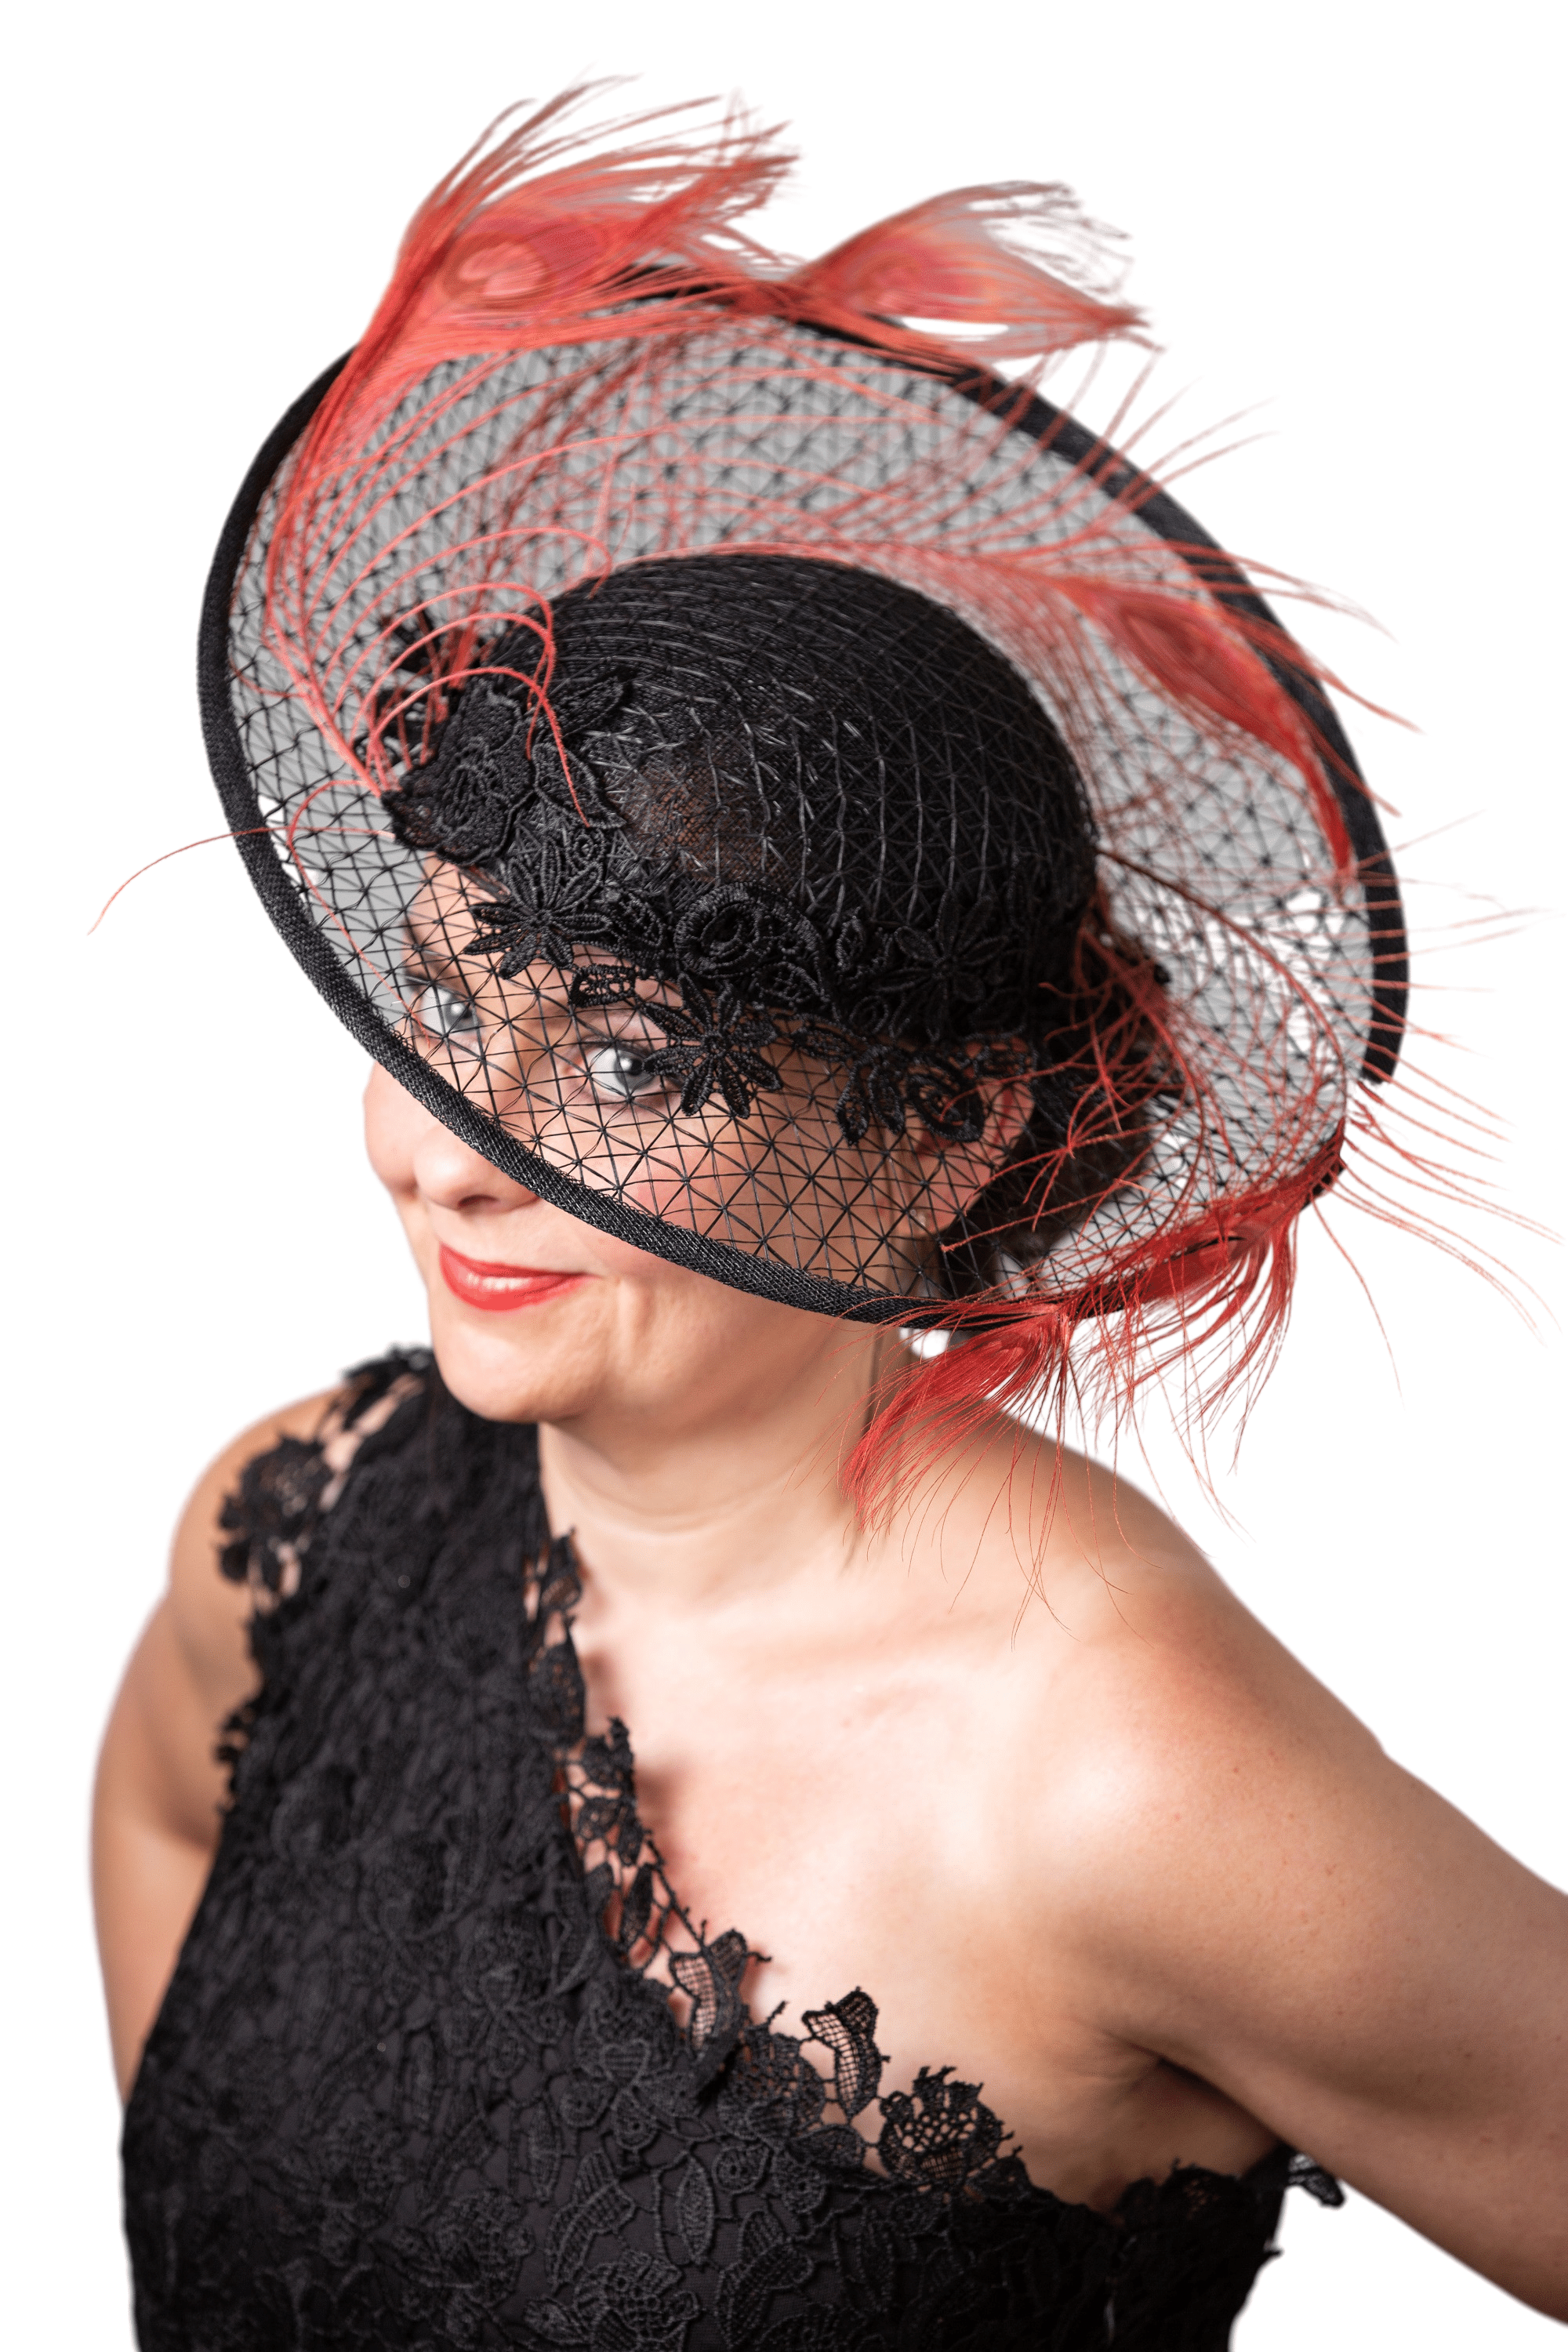 Full on side image od hat with model looking directly through transparent brim to camera.